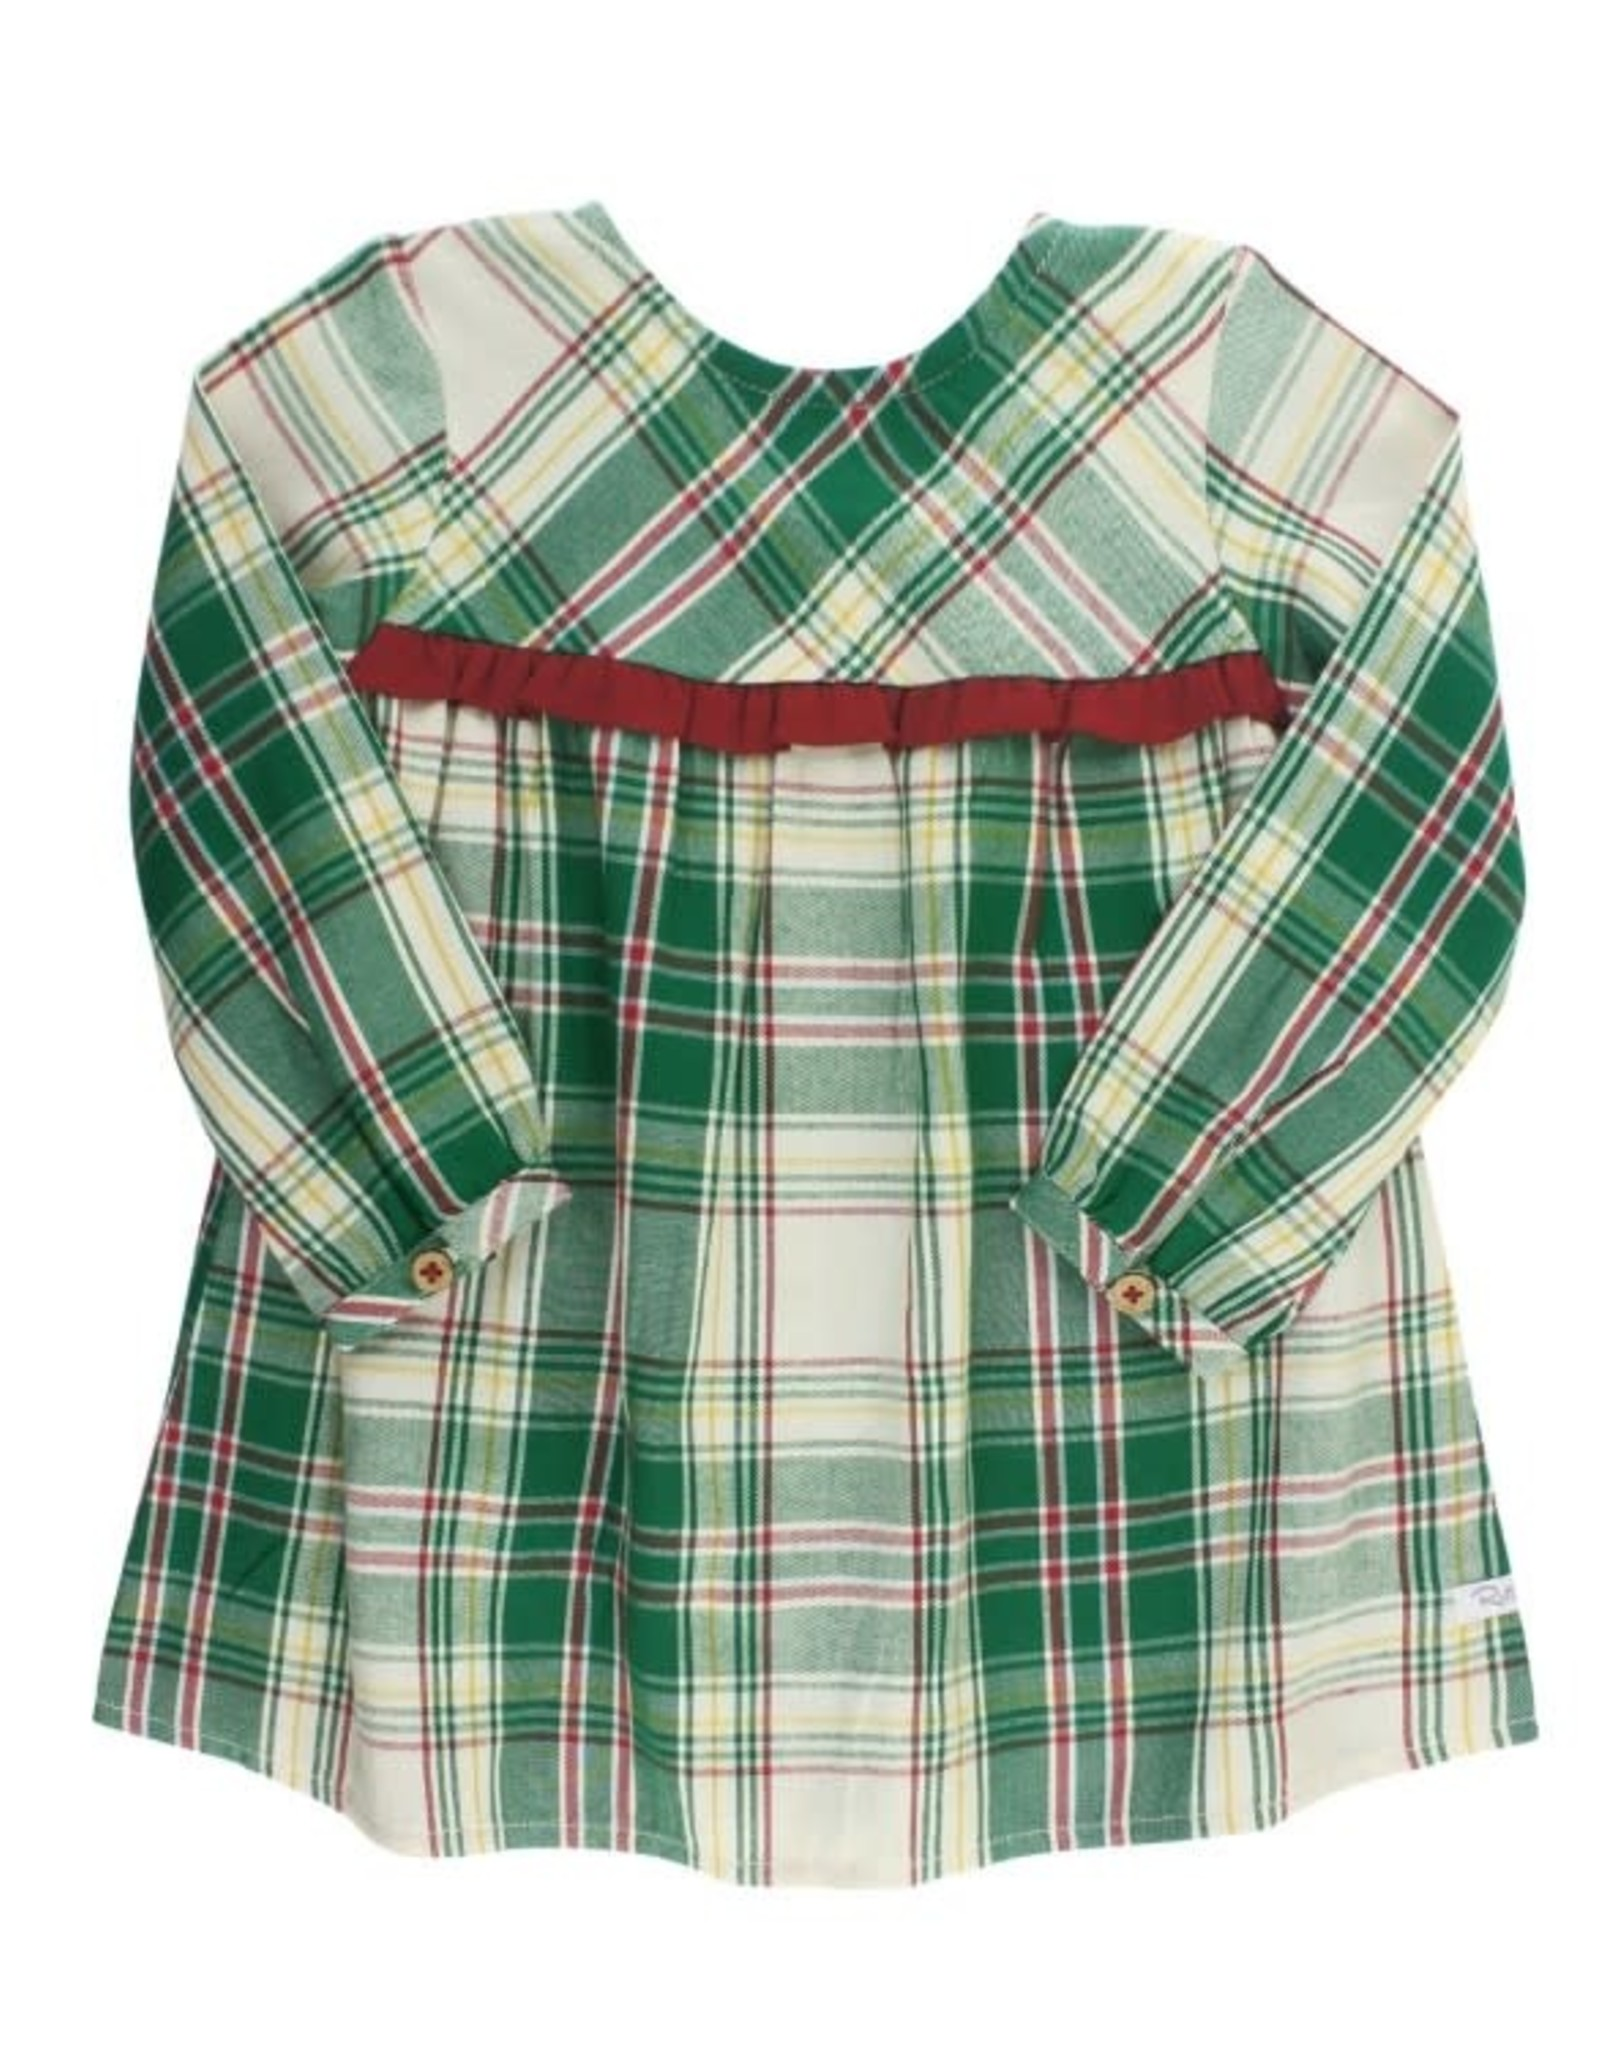 RuffleButts Hollis Plaid Ruffle Button Back Dress